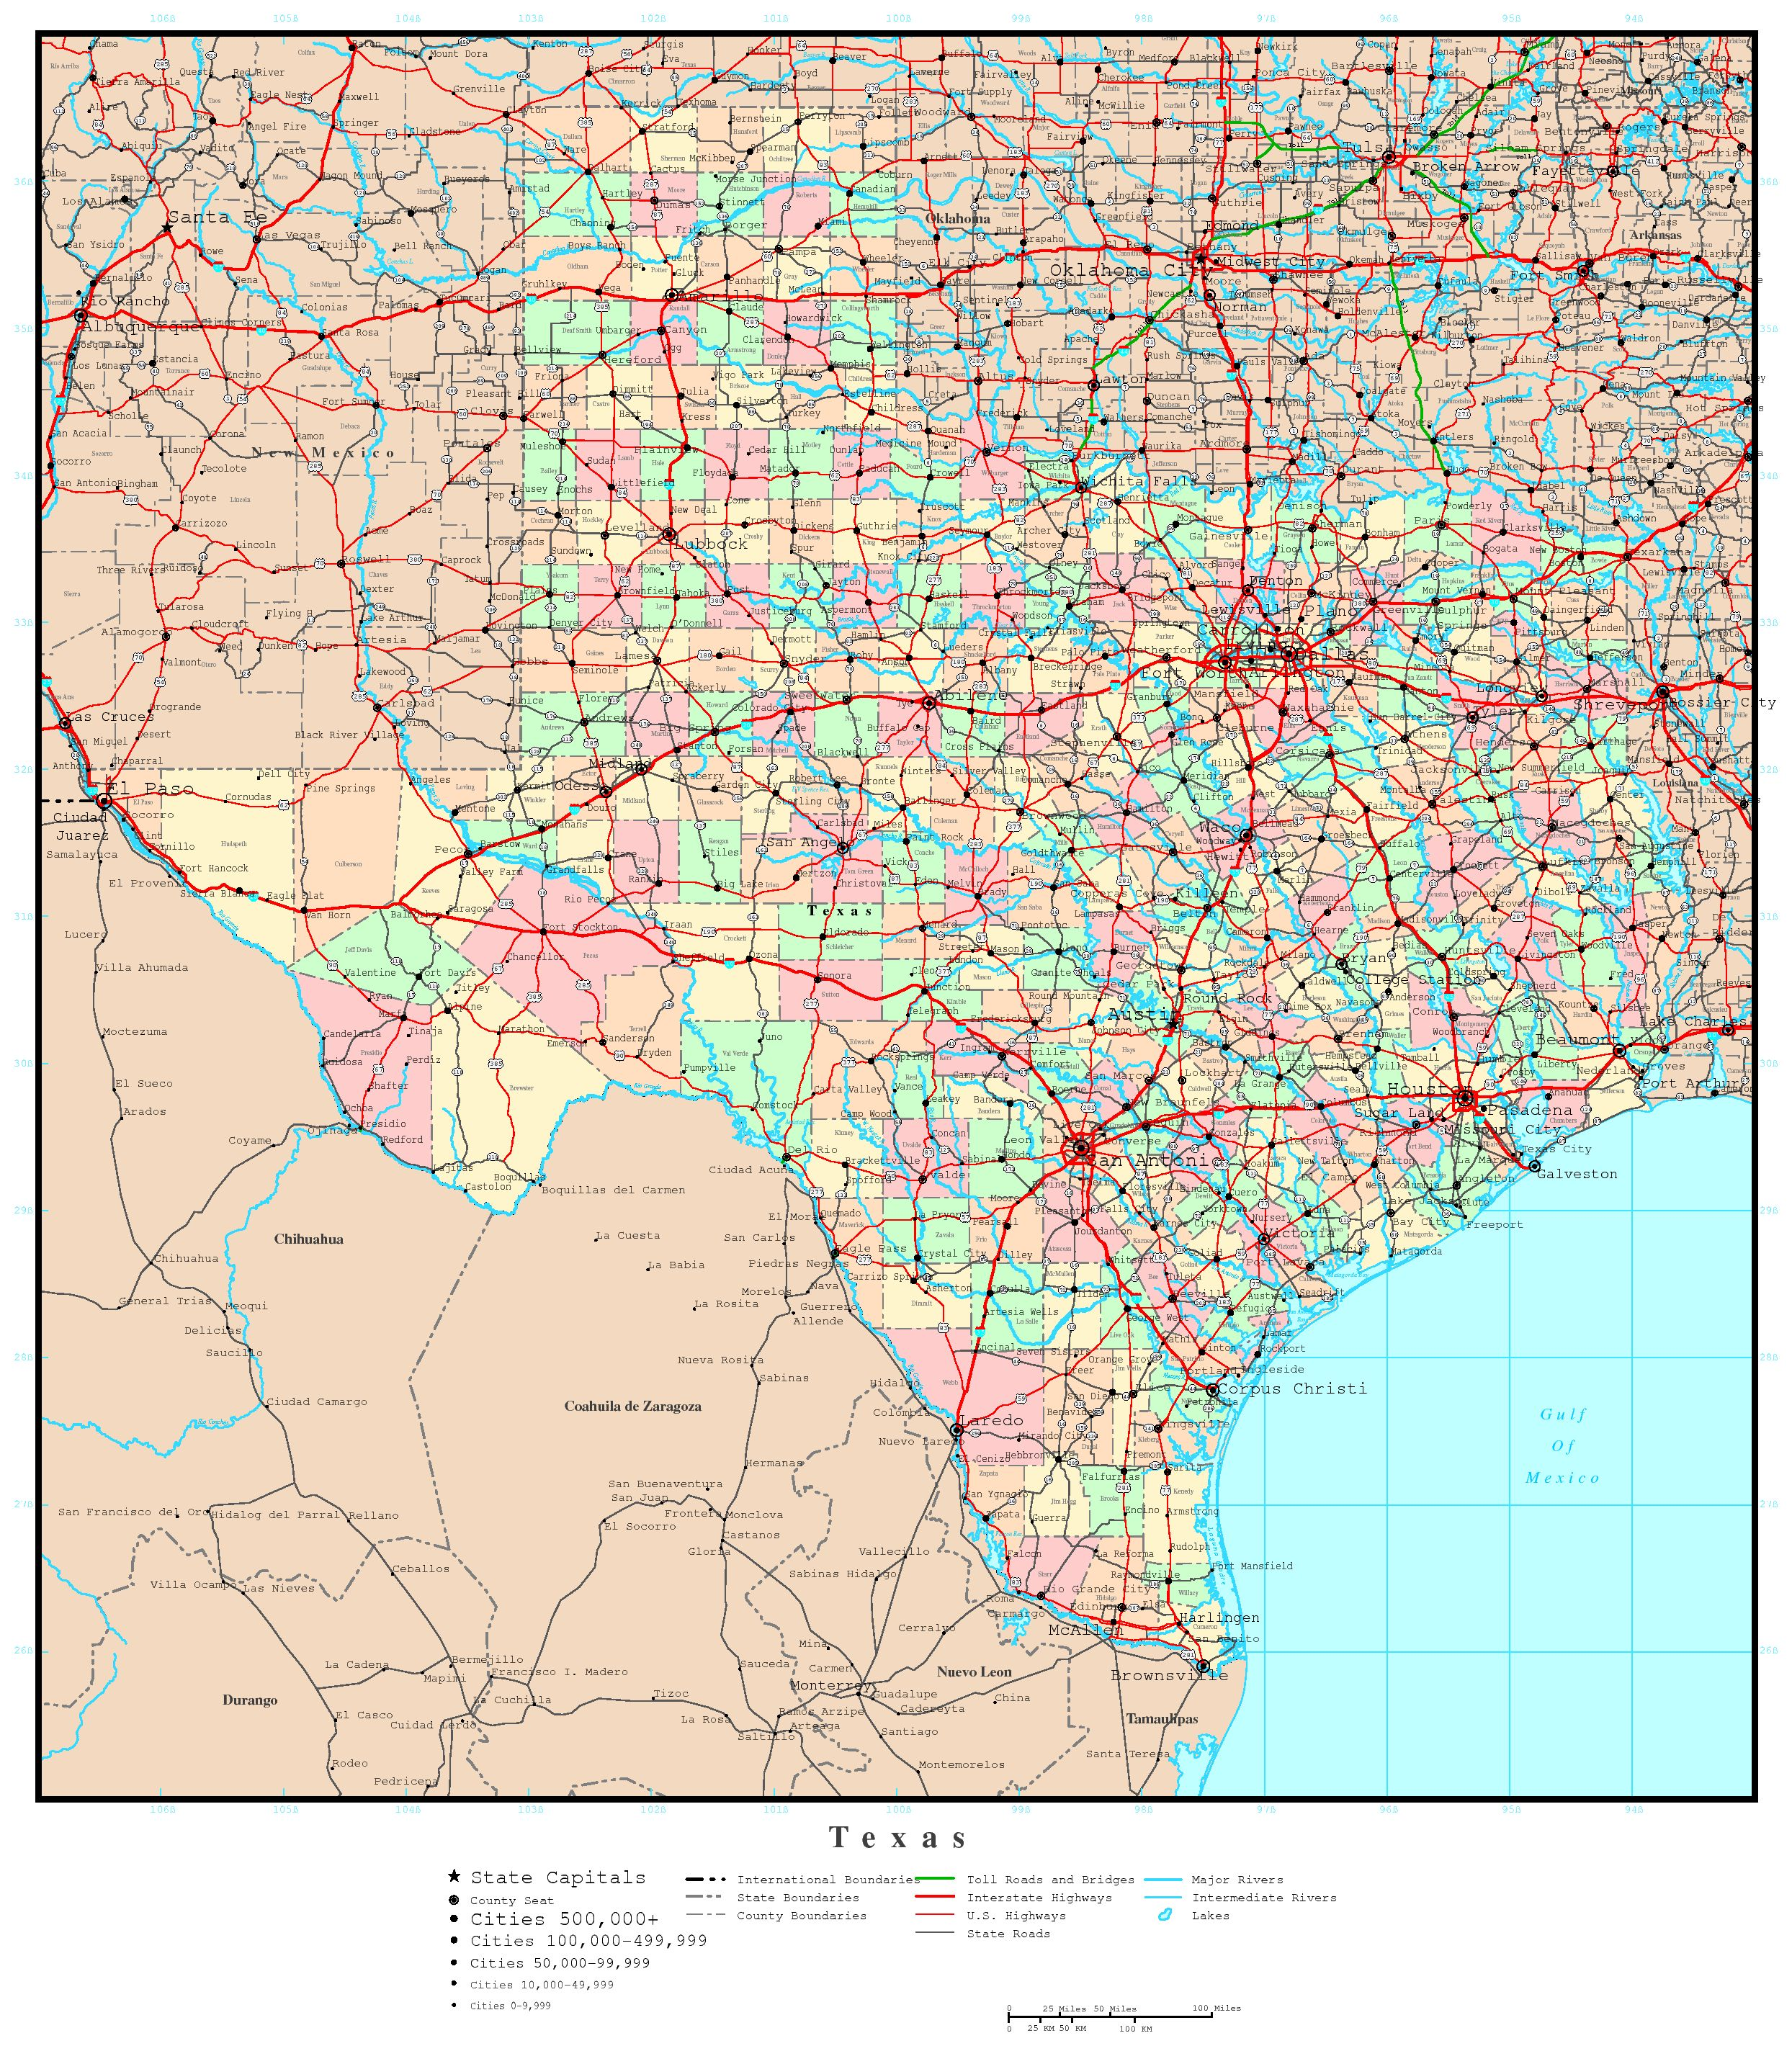 Texas Political Map - Texasmap